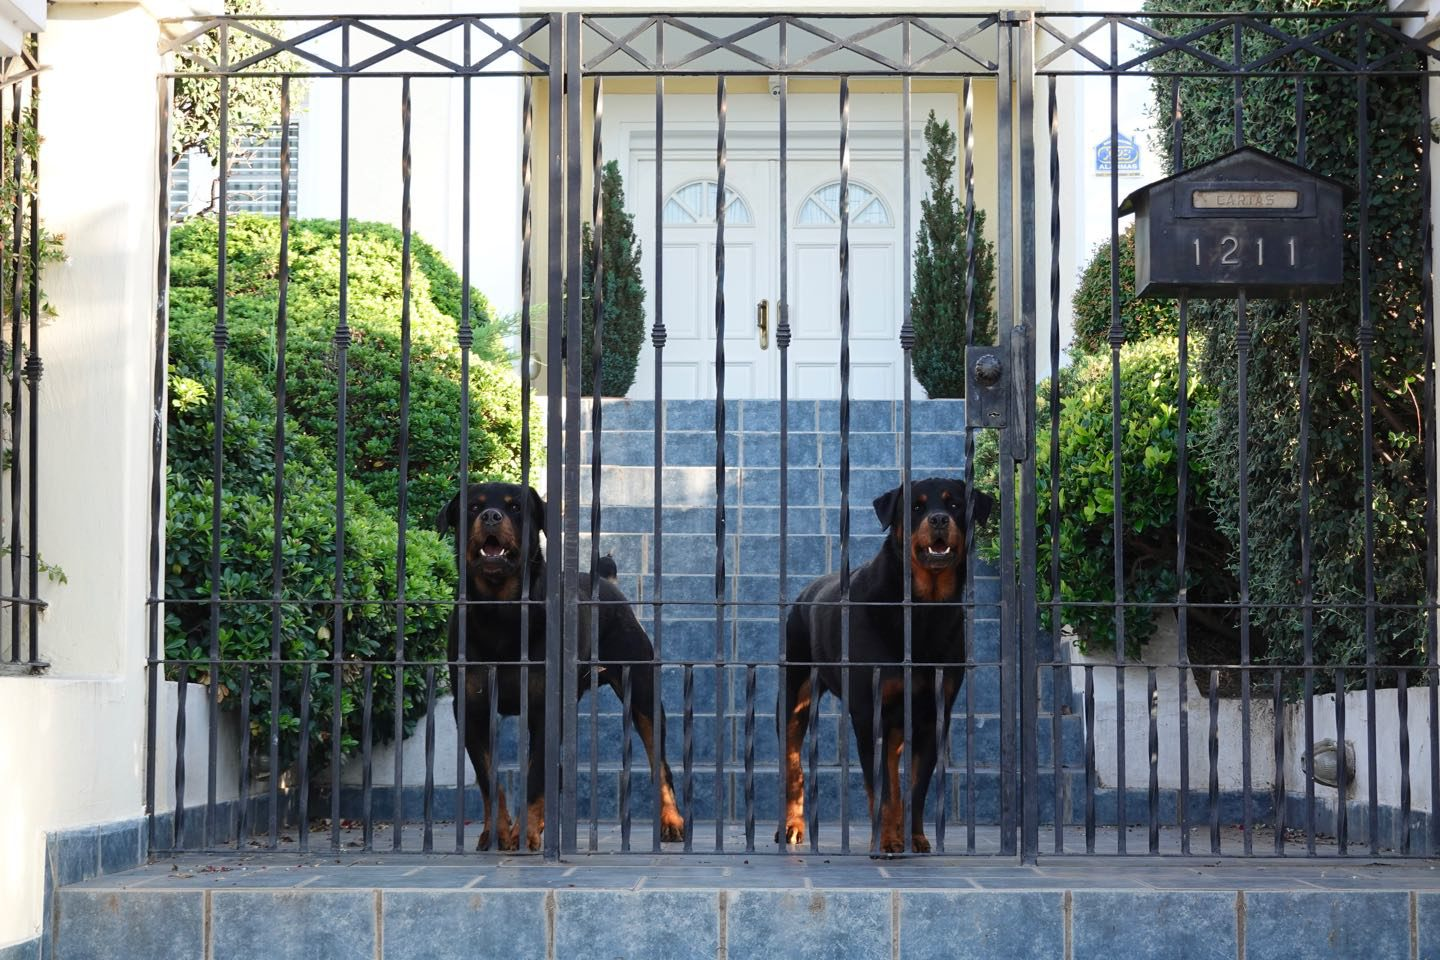 Perros guardianes de una mansion